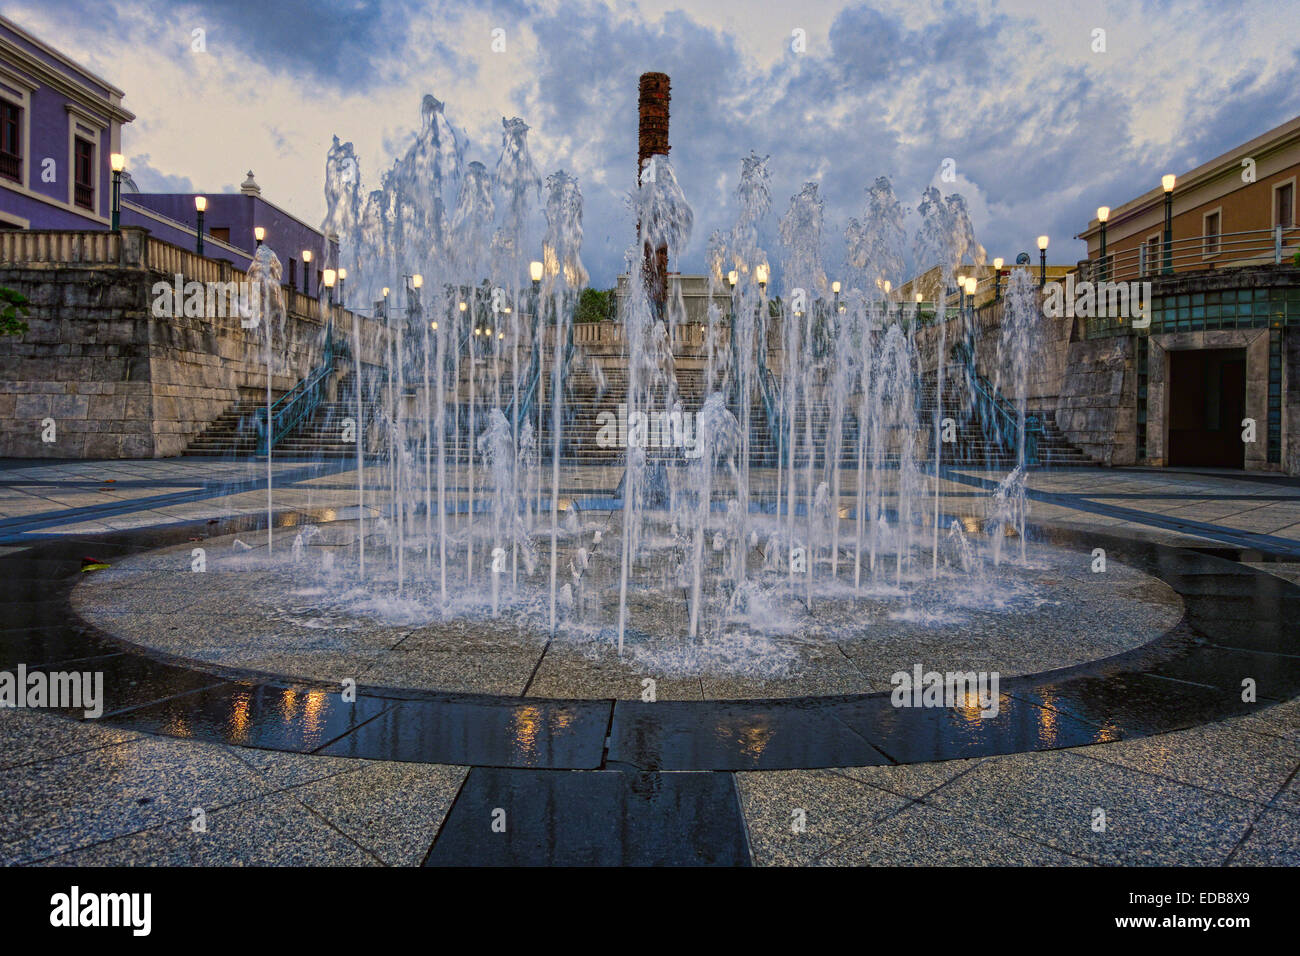 Low Angle View of a Fountain on Plaza del Quinto Centenario at Night, San Juan, Puerto Rico - Stock Image